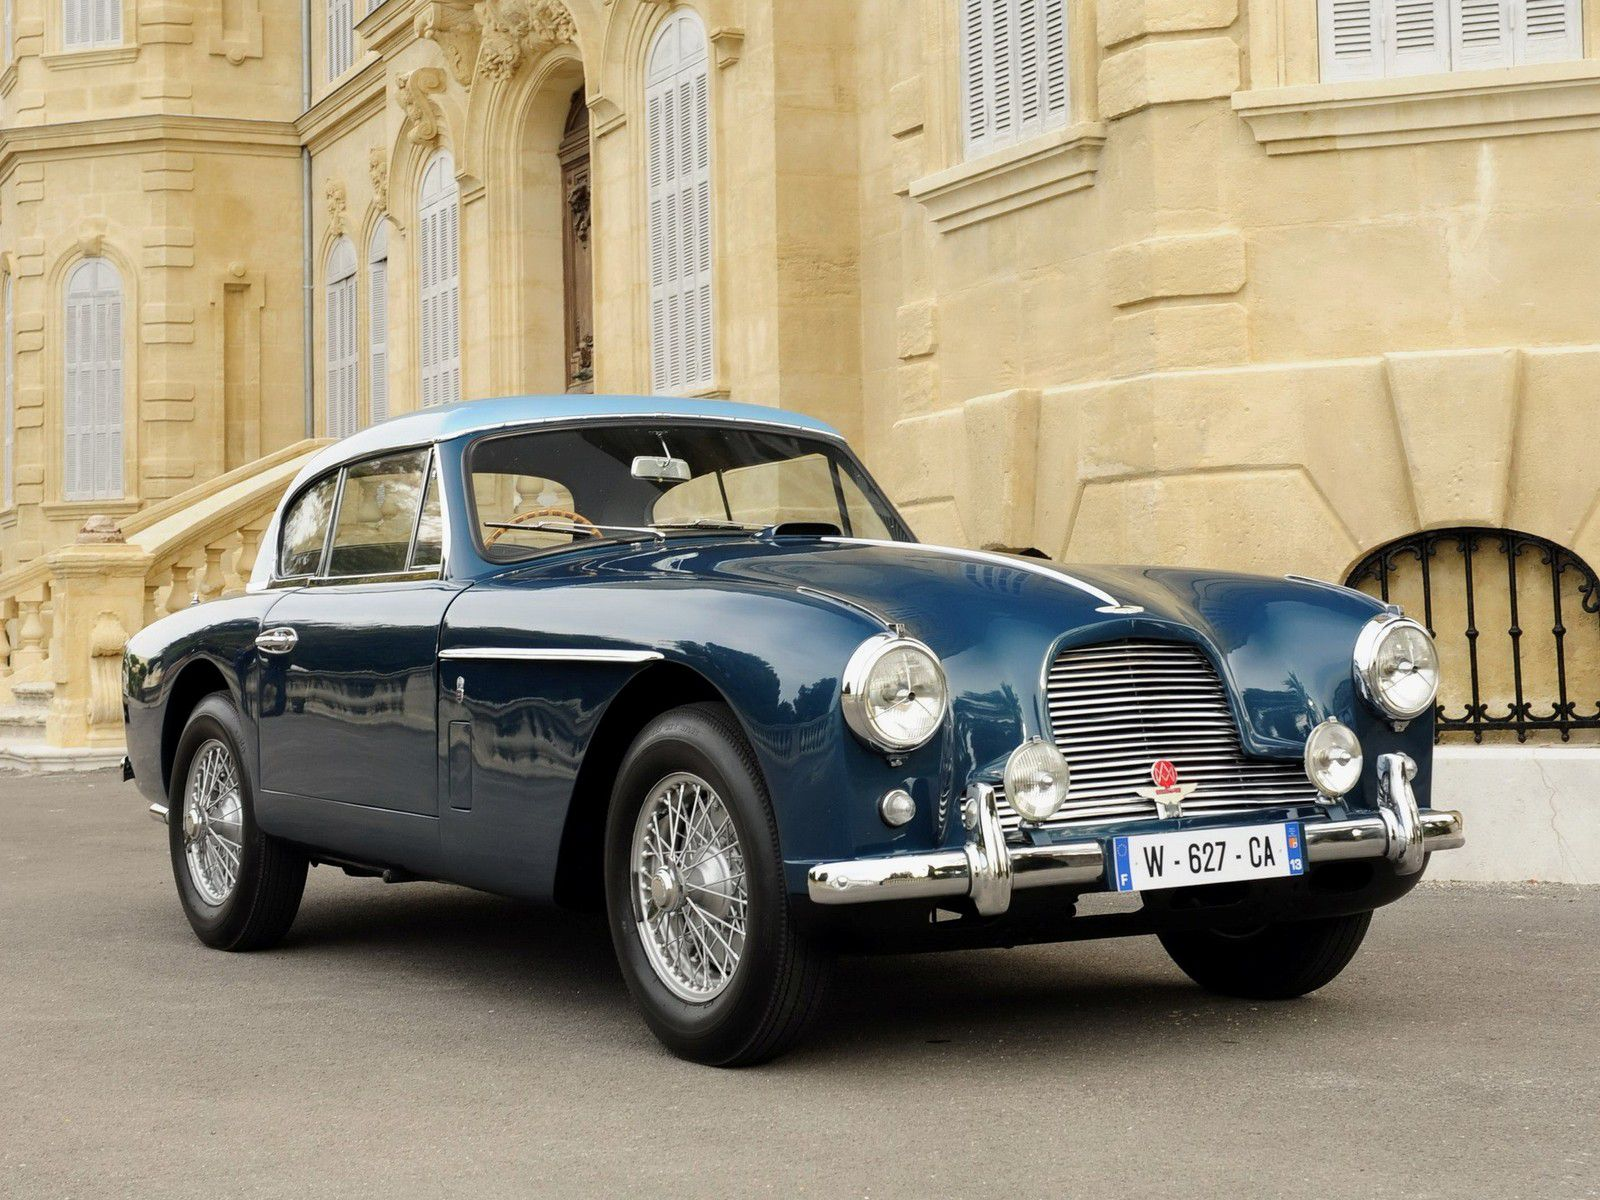 VOITURES DE LEGENDE (1136) : ASTON MARTIN  DB2/4 FIXED HEAD COUPE By TICKFORD - 1955